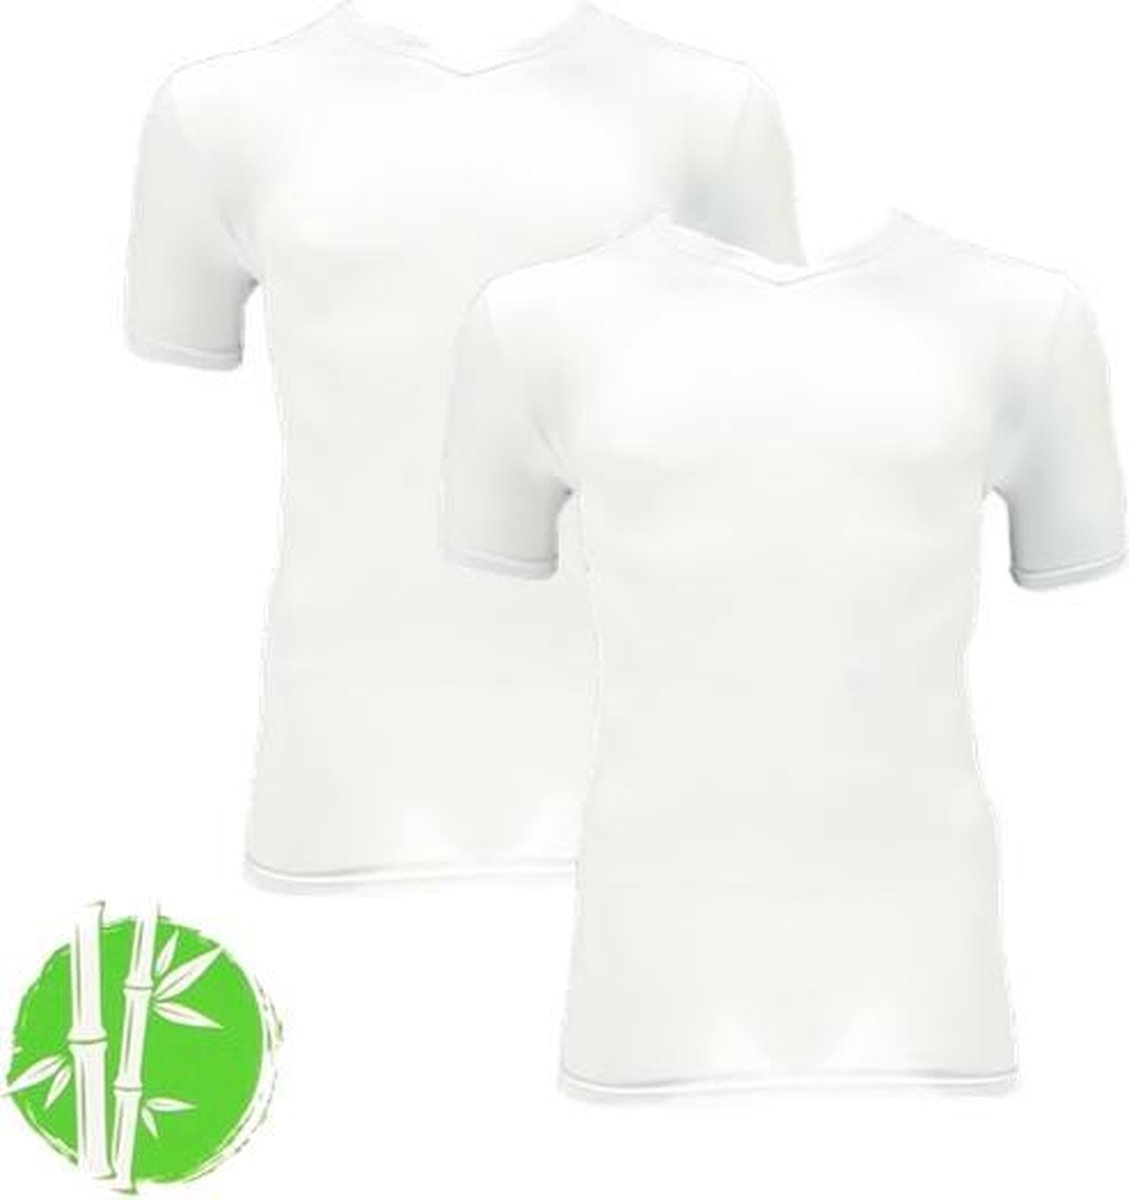 Apollo bamboo t-shirts | MAAT M | 2-pack heren t-shirts | wit